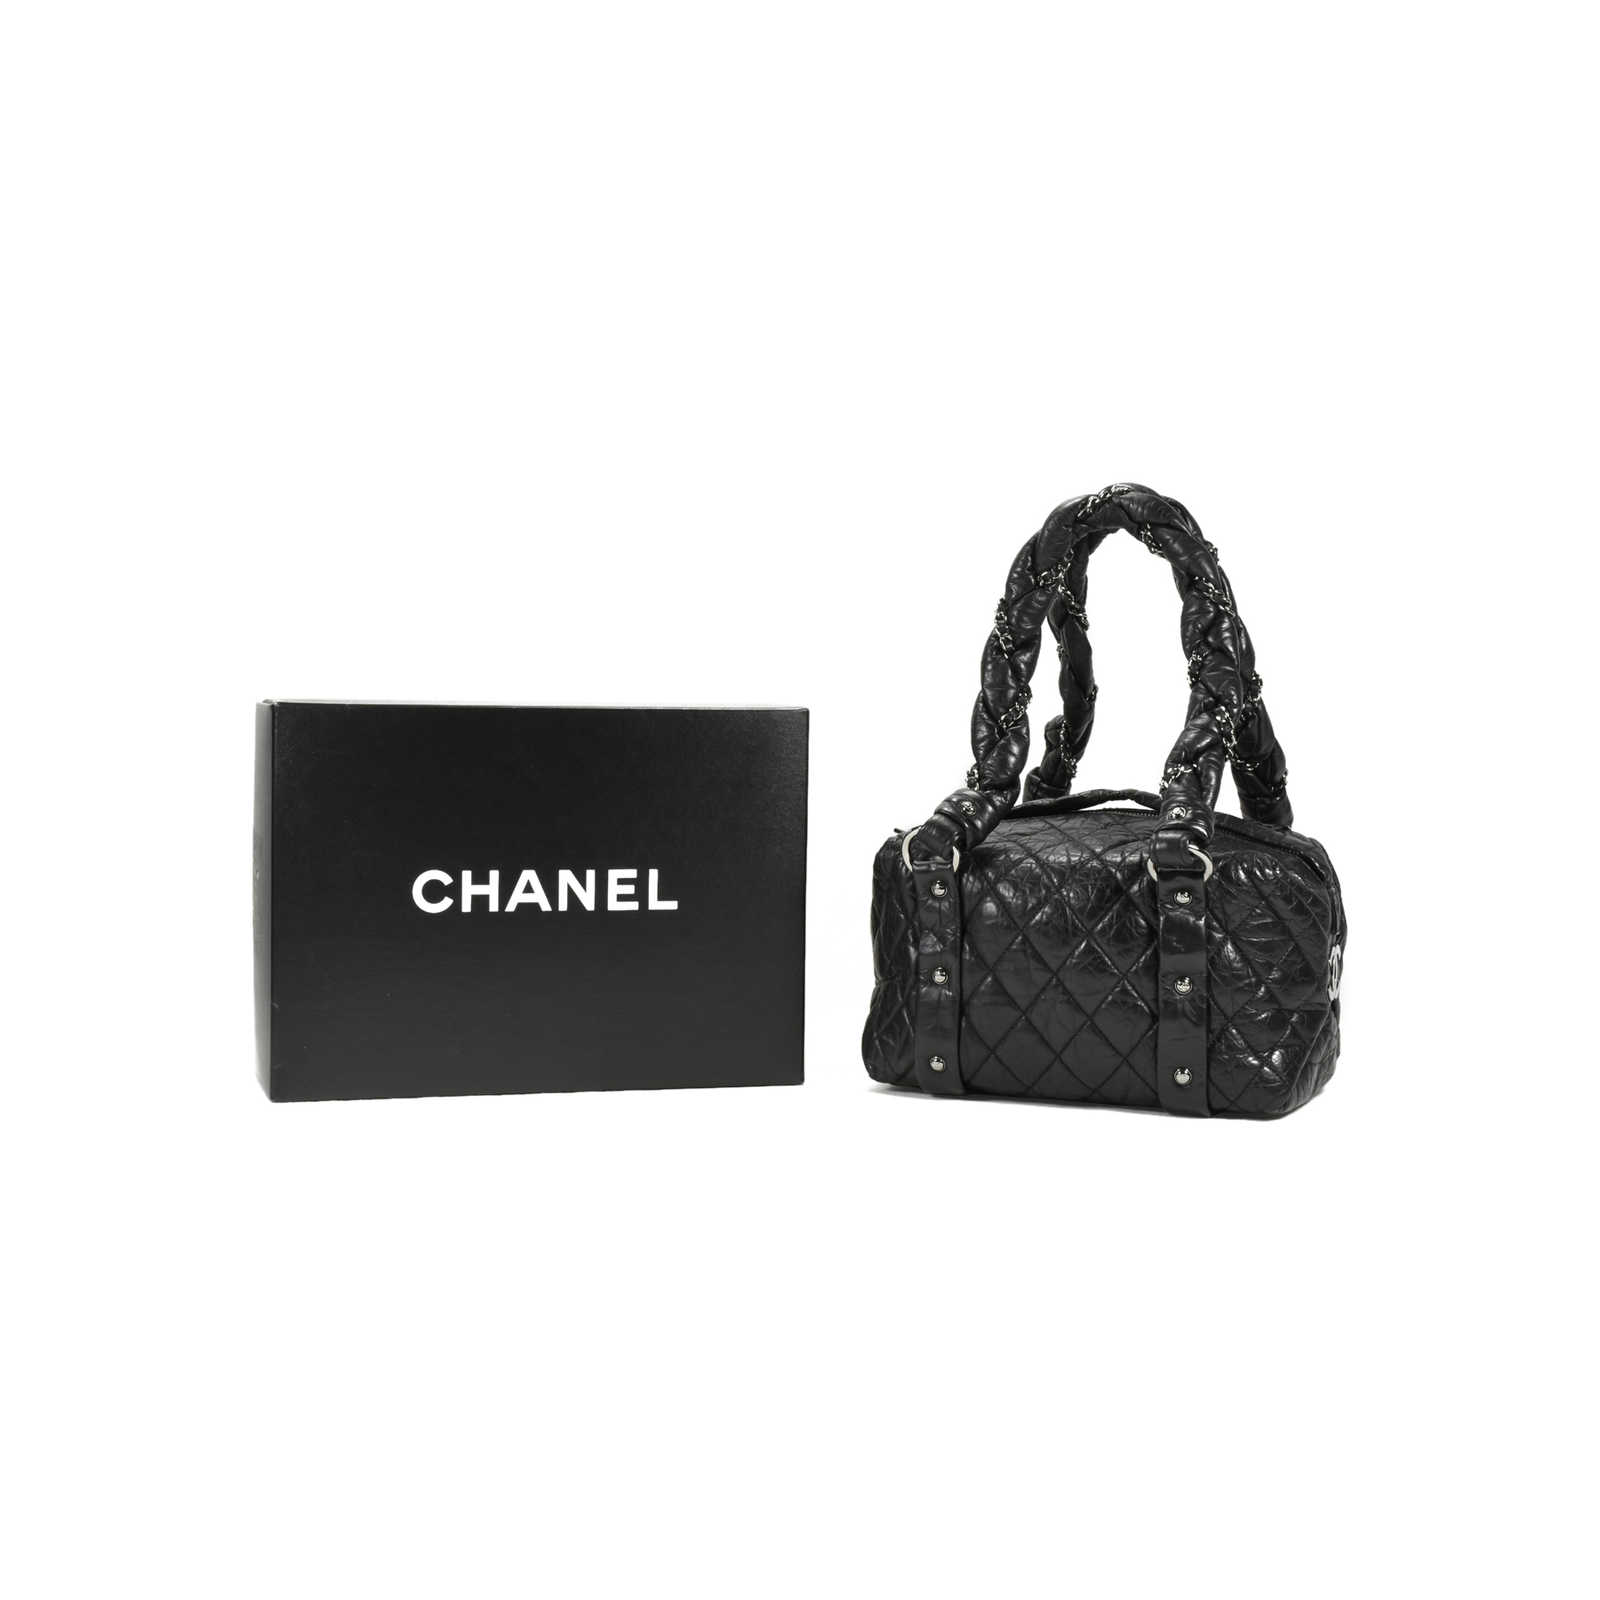 80162d0988d6 ... Authentic Second Hand Chanel Lady Braid Small Tote Bag (PSS-200-00898)